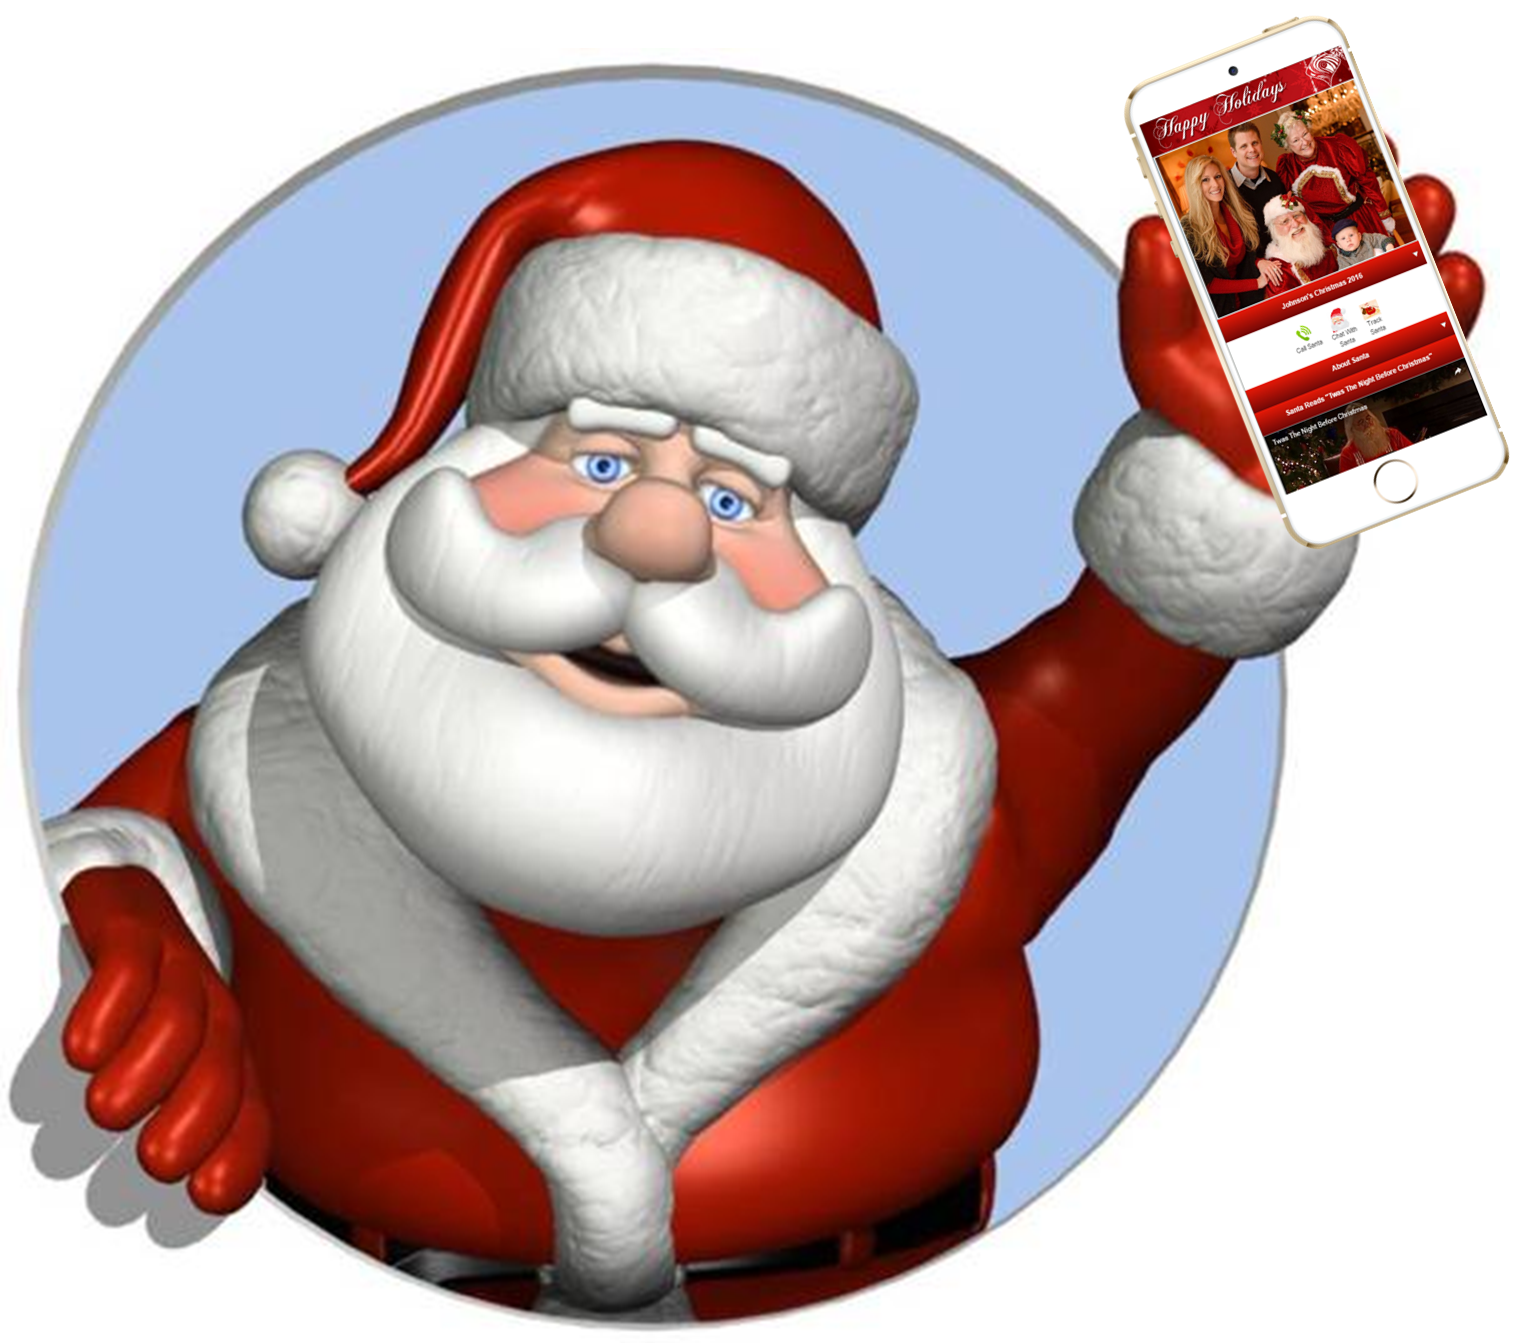 The Santa Photo App by Platinum Edge Media